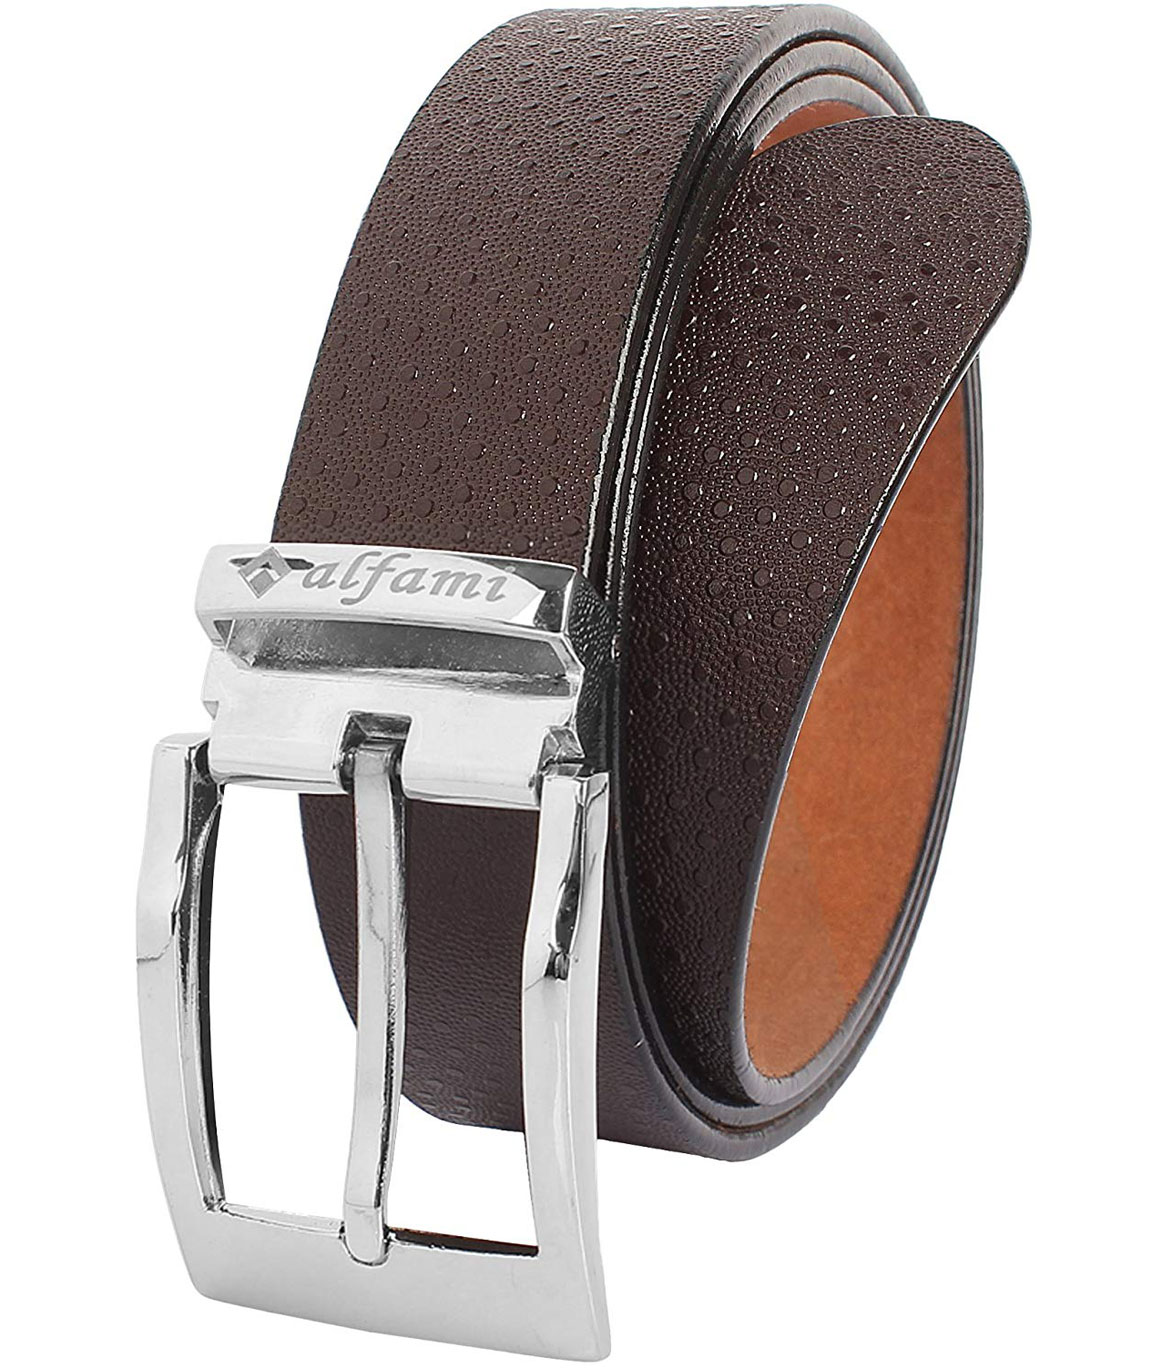 Alfami Mens/Gents/Boys Genuine Original Leather Belt | Formal/Casual | Brown Colour | All Sizes | 1 Year Warranty